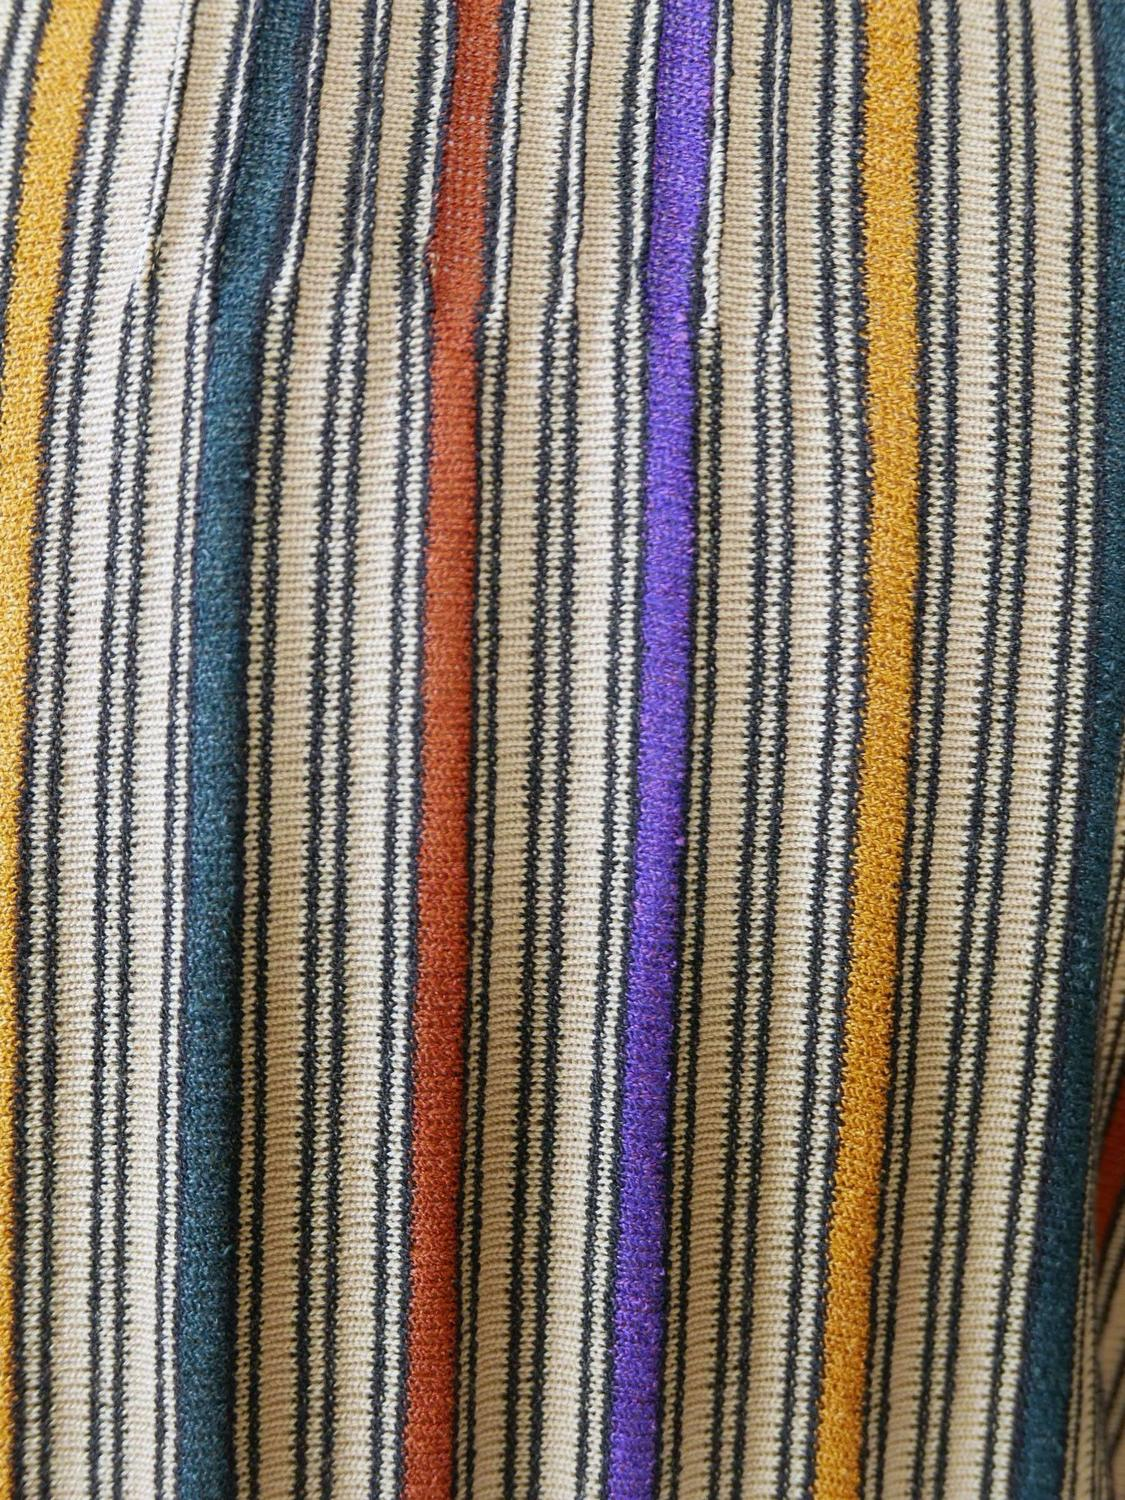 1970s missoni knit sweater striped cardigan for sale at 1stdibs - Tapis bambou 120x180 ...